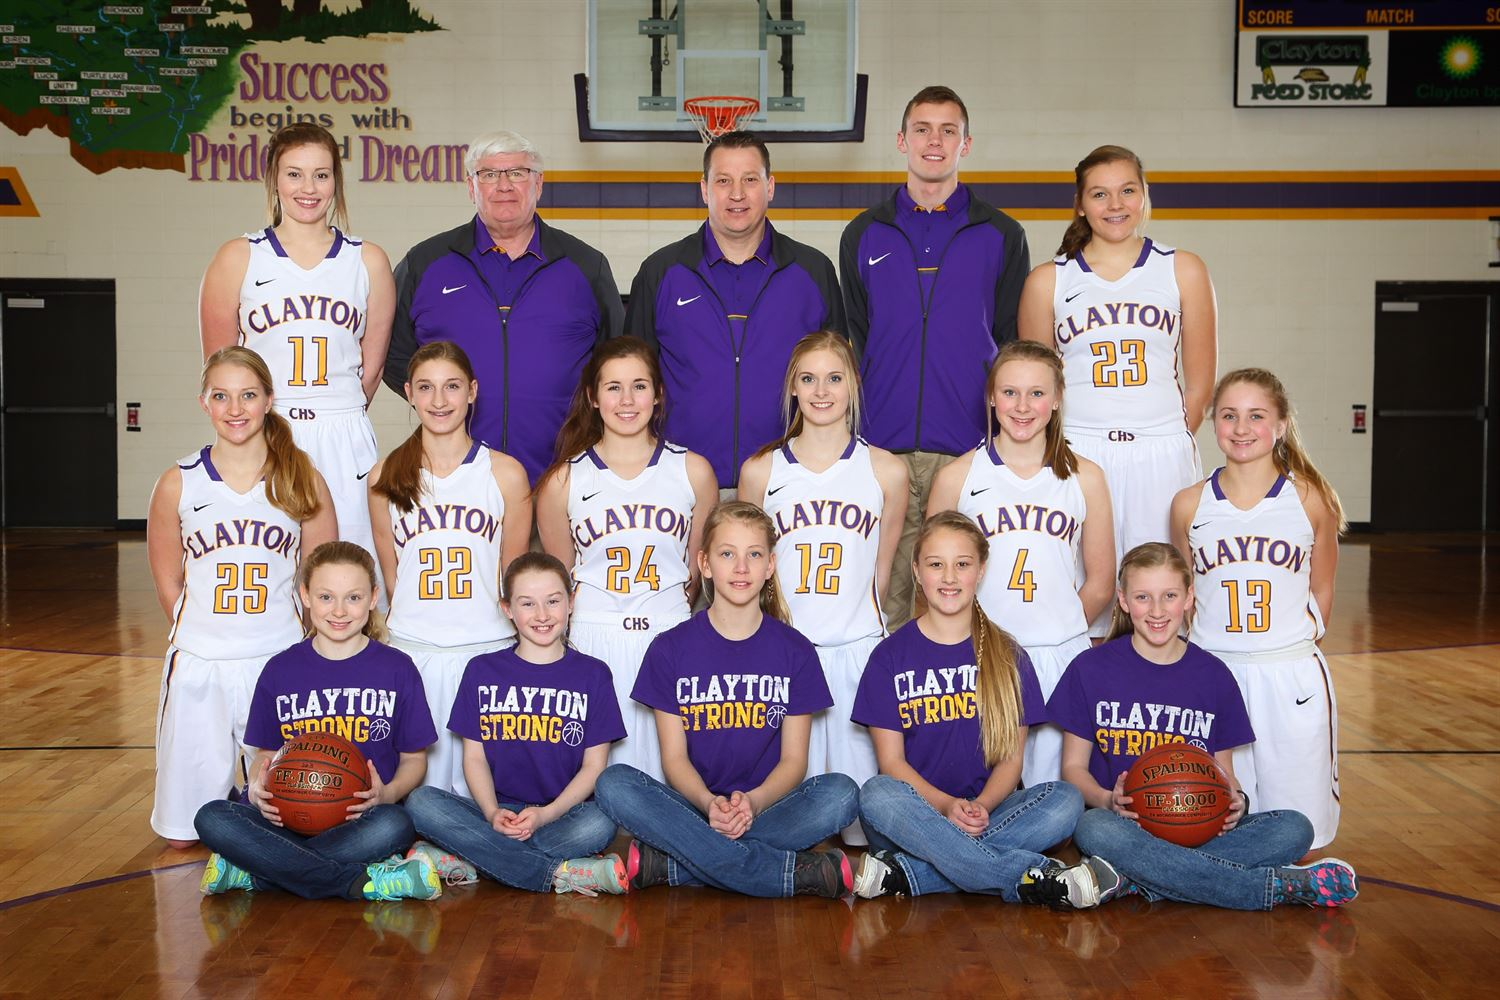 Clayton High School - Clayton Girls Basketball